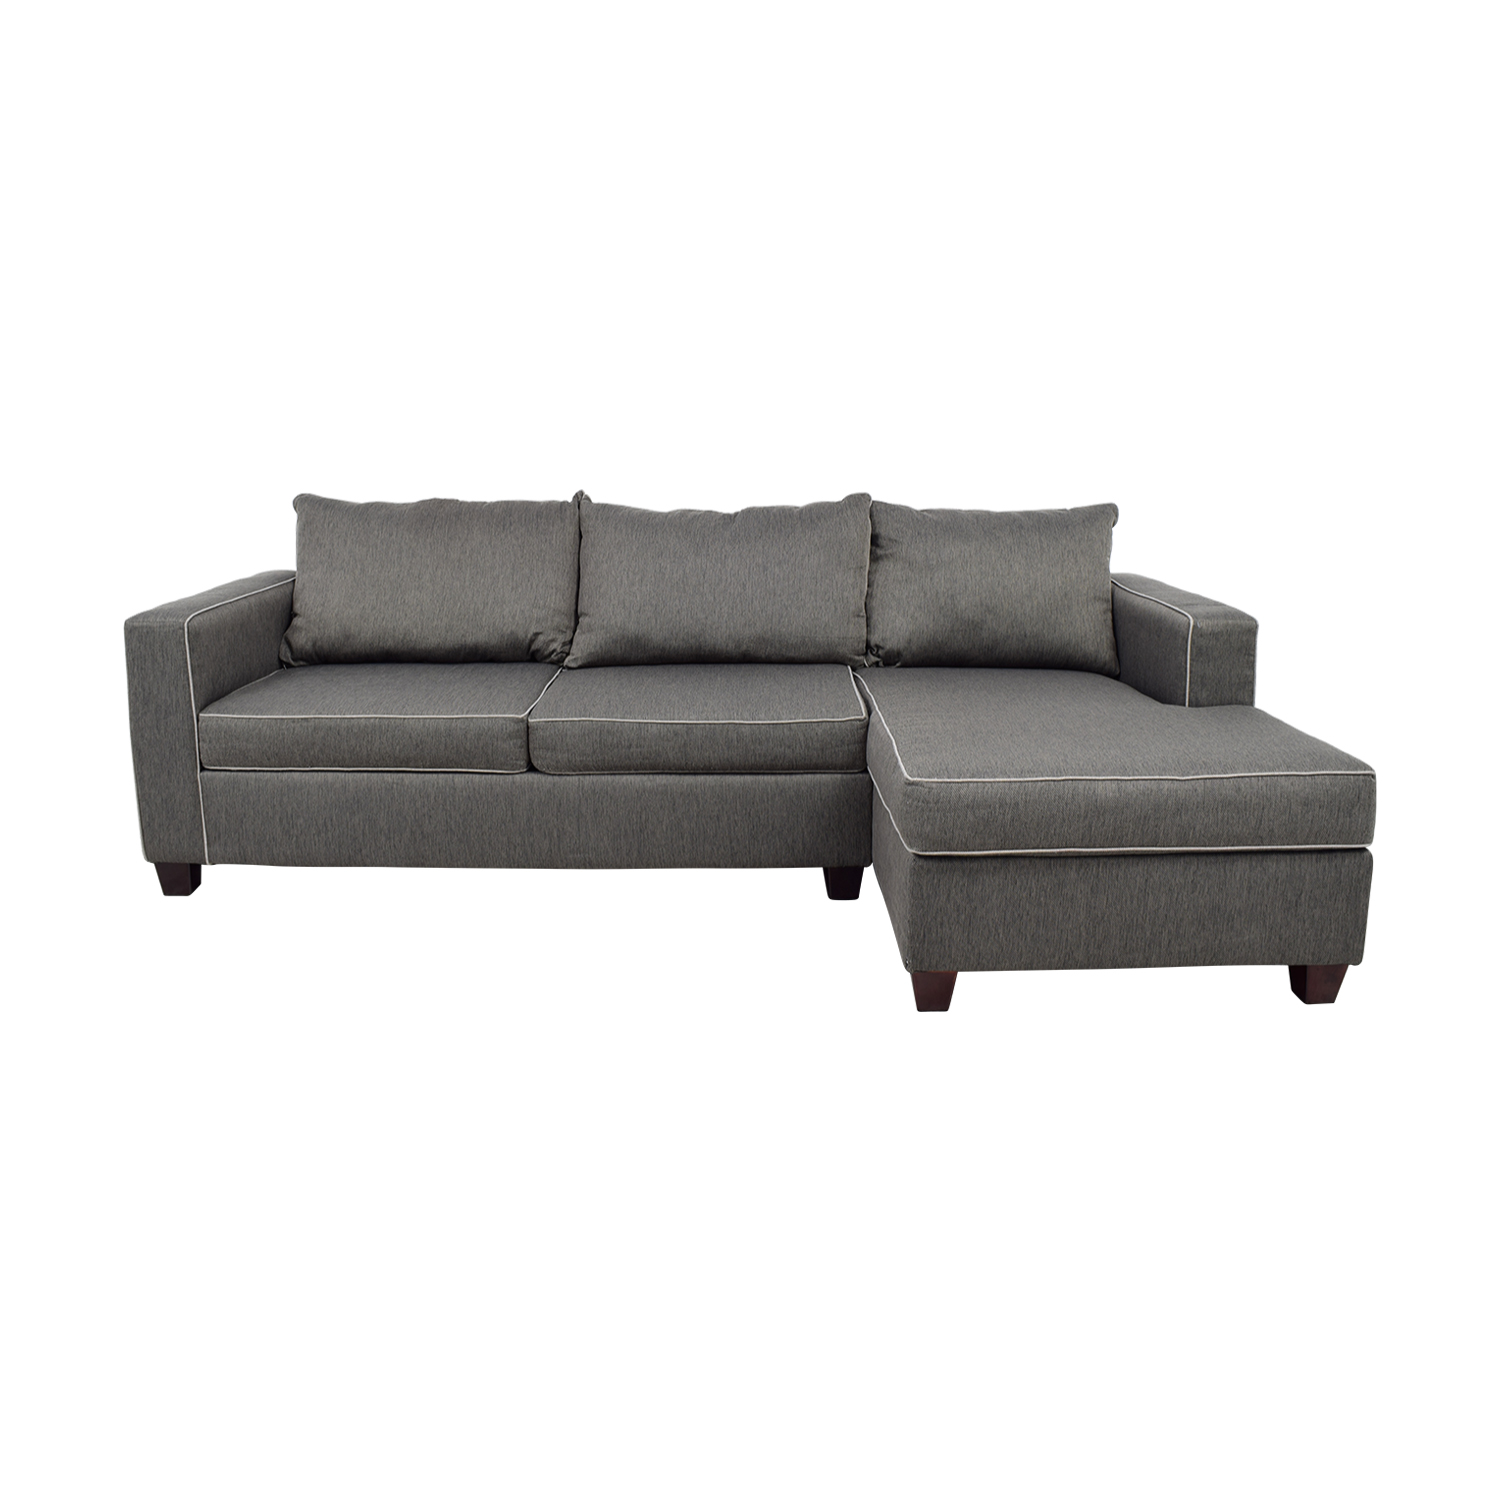 Bob's Furniture Bob's Furniture Alex Grey Chaise Sectional for sale